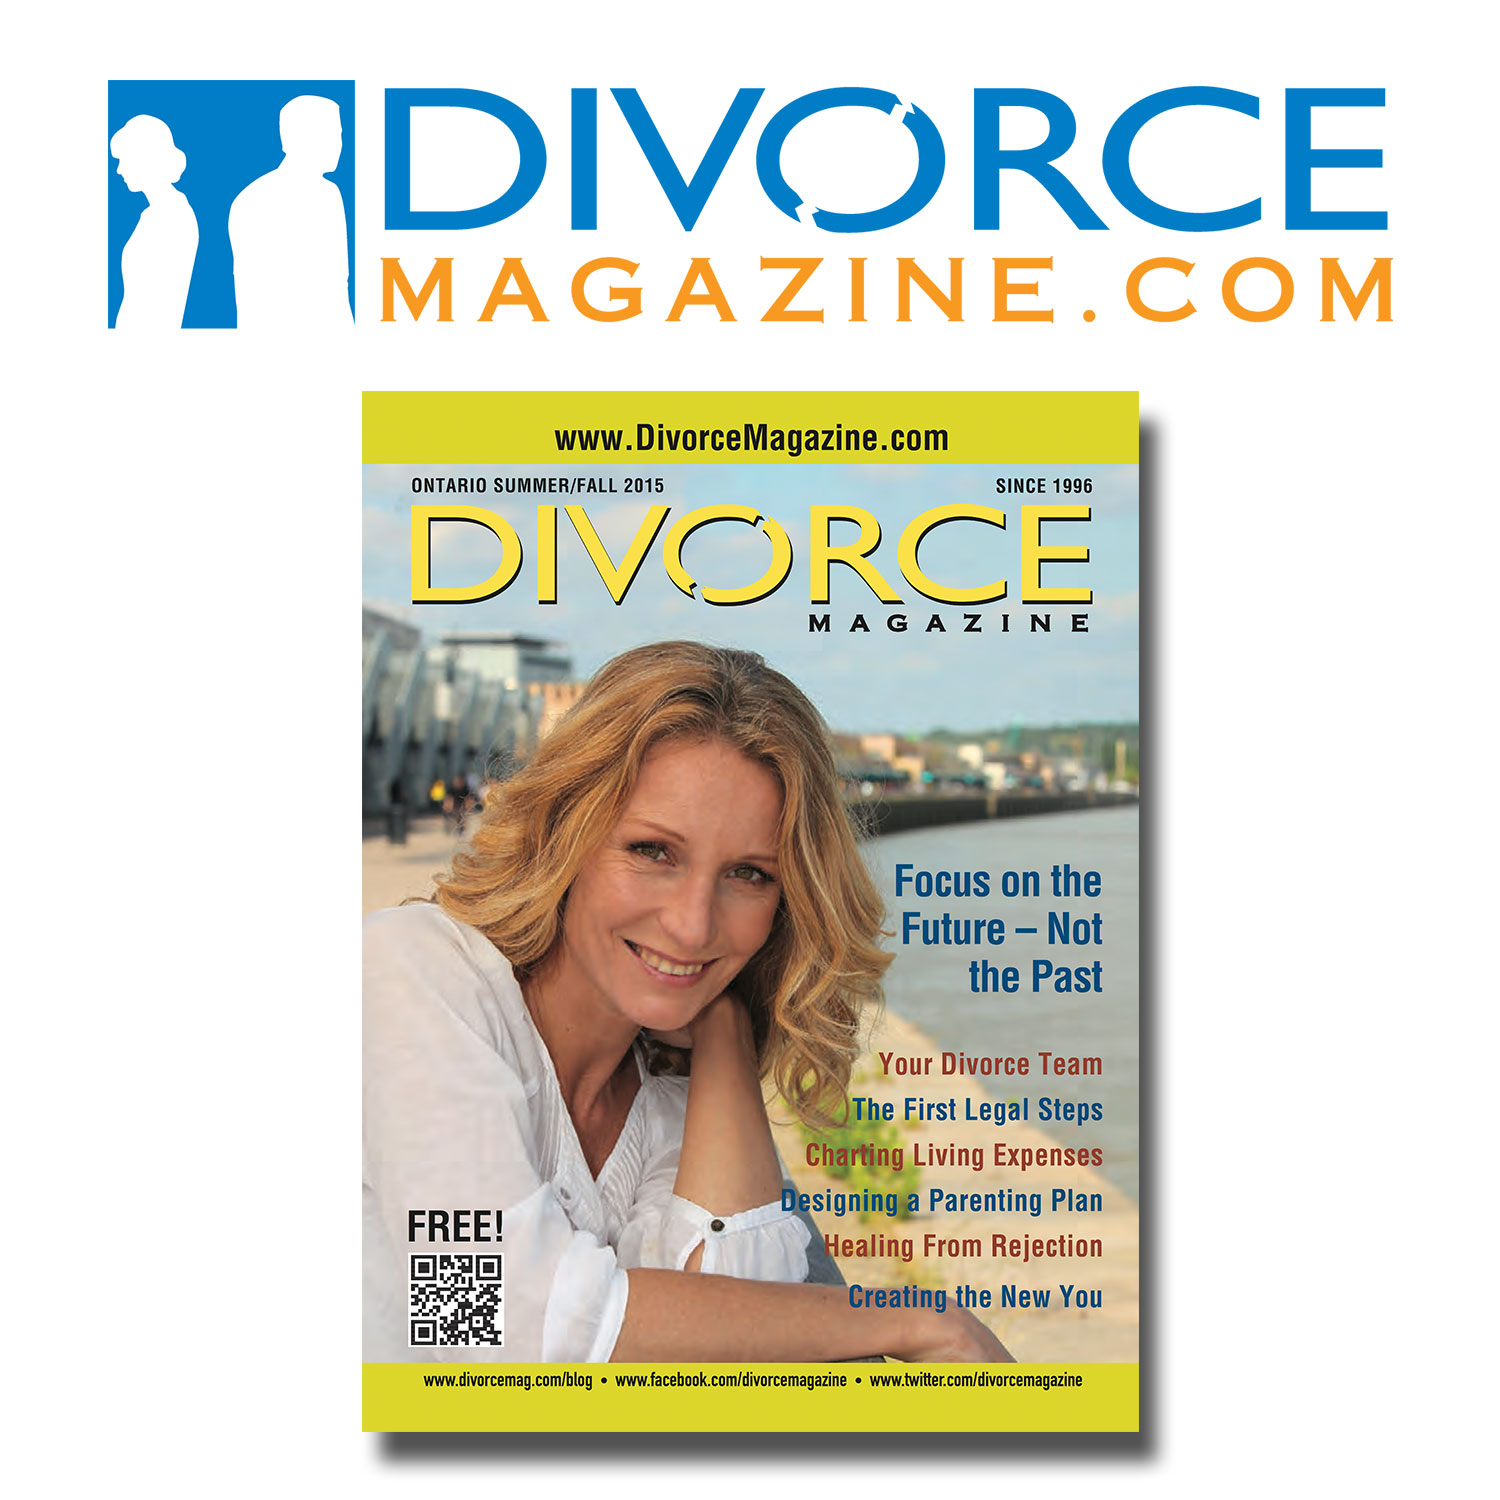 New Jersey Divorce Lawyer and Mediator Alison Leslie on Child-Related Issues in Divorce